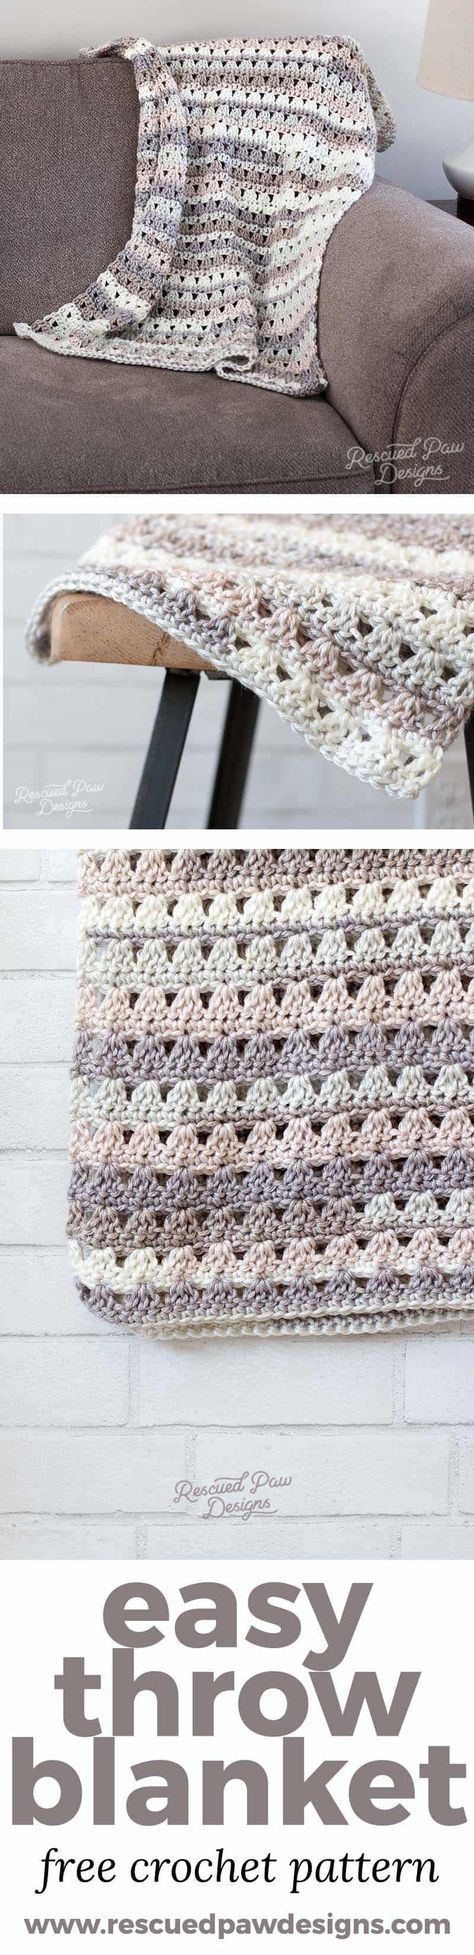 This easy crochet throw is the perfect throw to work up on a weekend crochet marathon. This design involves repeats along with some simple stitches to make for an easy quick and easy crochet throw! Make this simple crochet blanket today with this free pattern from Rescued Paw Designs via @rescuedpaw